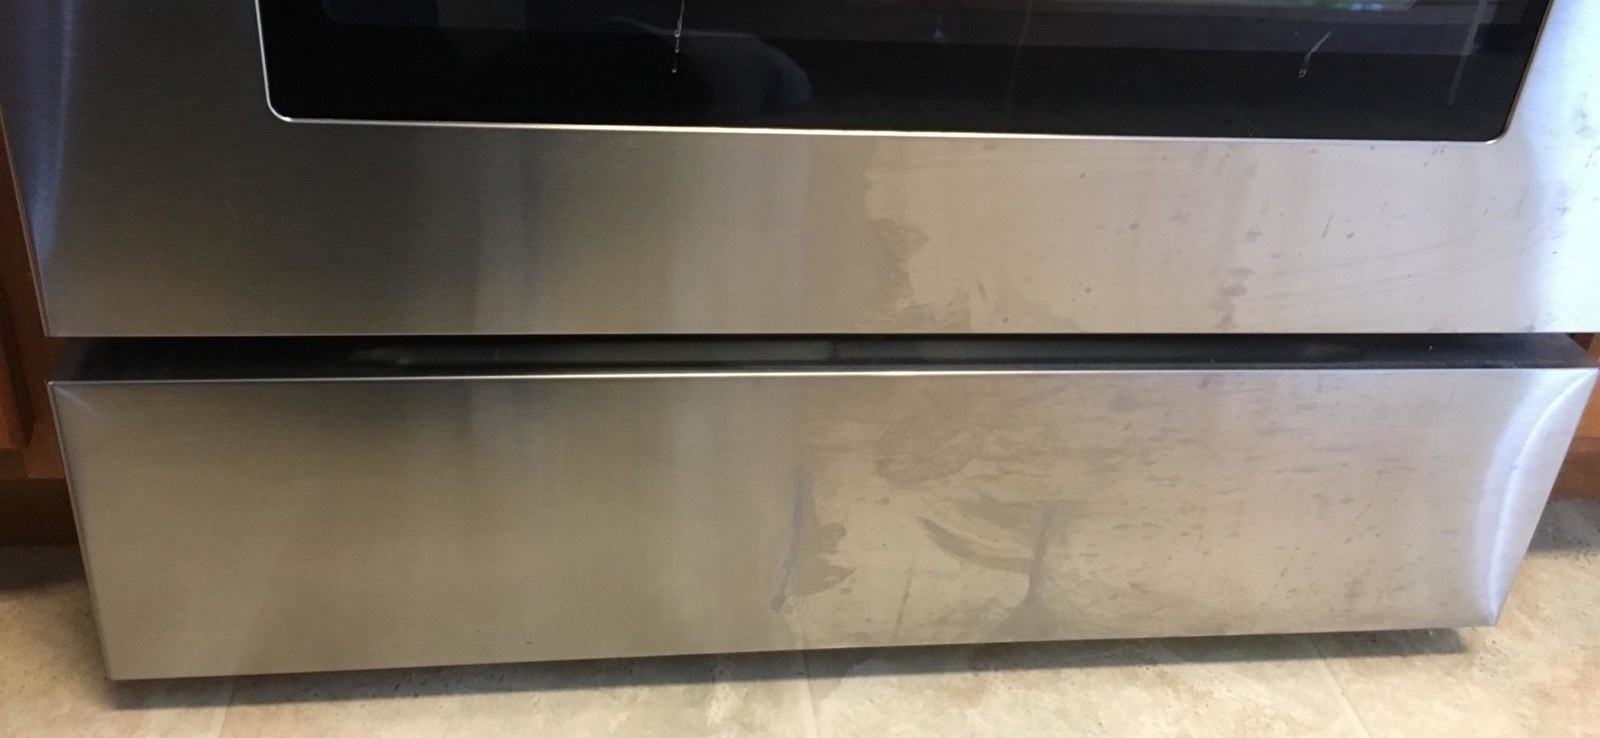 the bottom of a spotless stainless steel oven